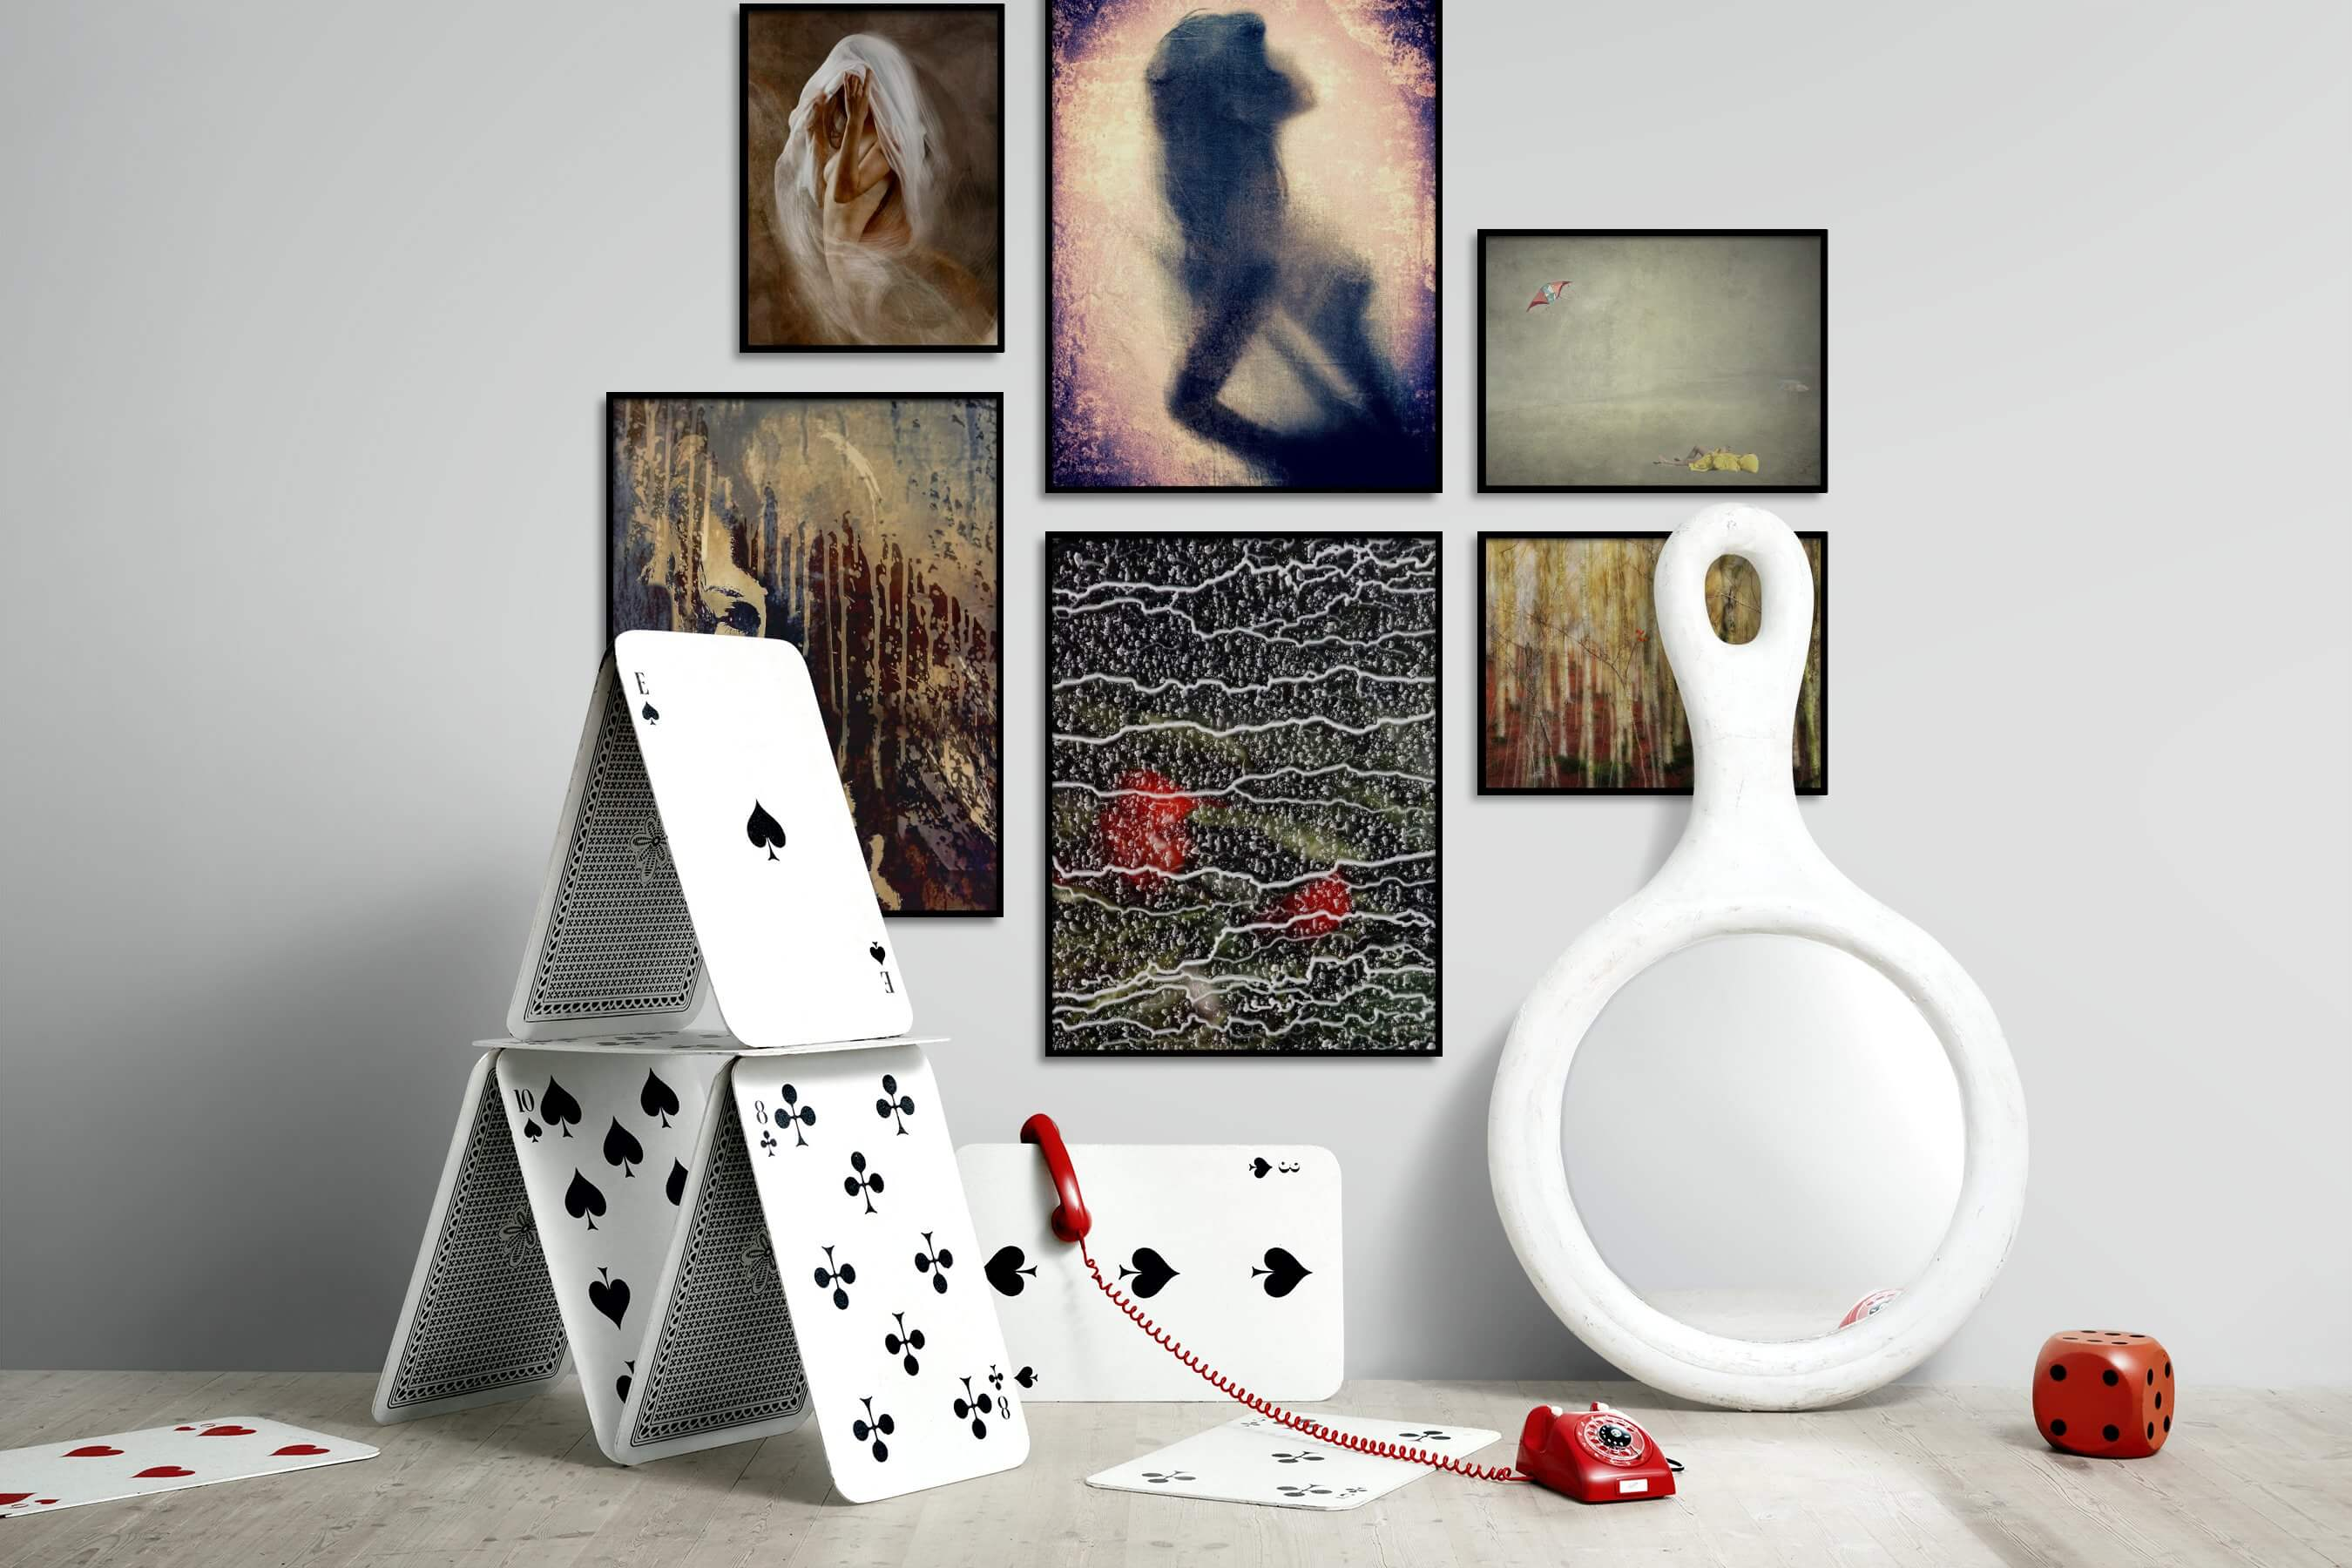 Gallery wall idea with six framed pictures arranged on a wall depicting Artsy, Fashion & Beauty, For the Maximalist, For the Minimalist, Beach & Water, Vintage, and Nature